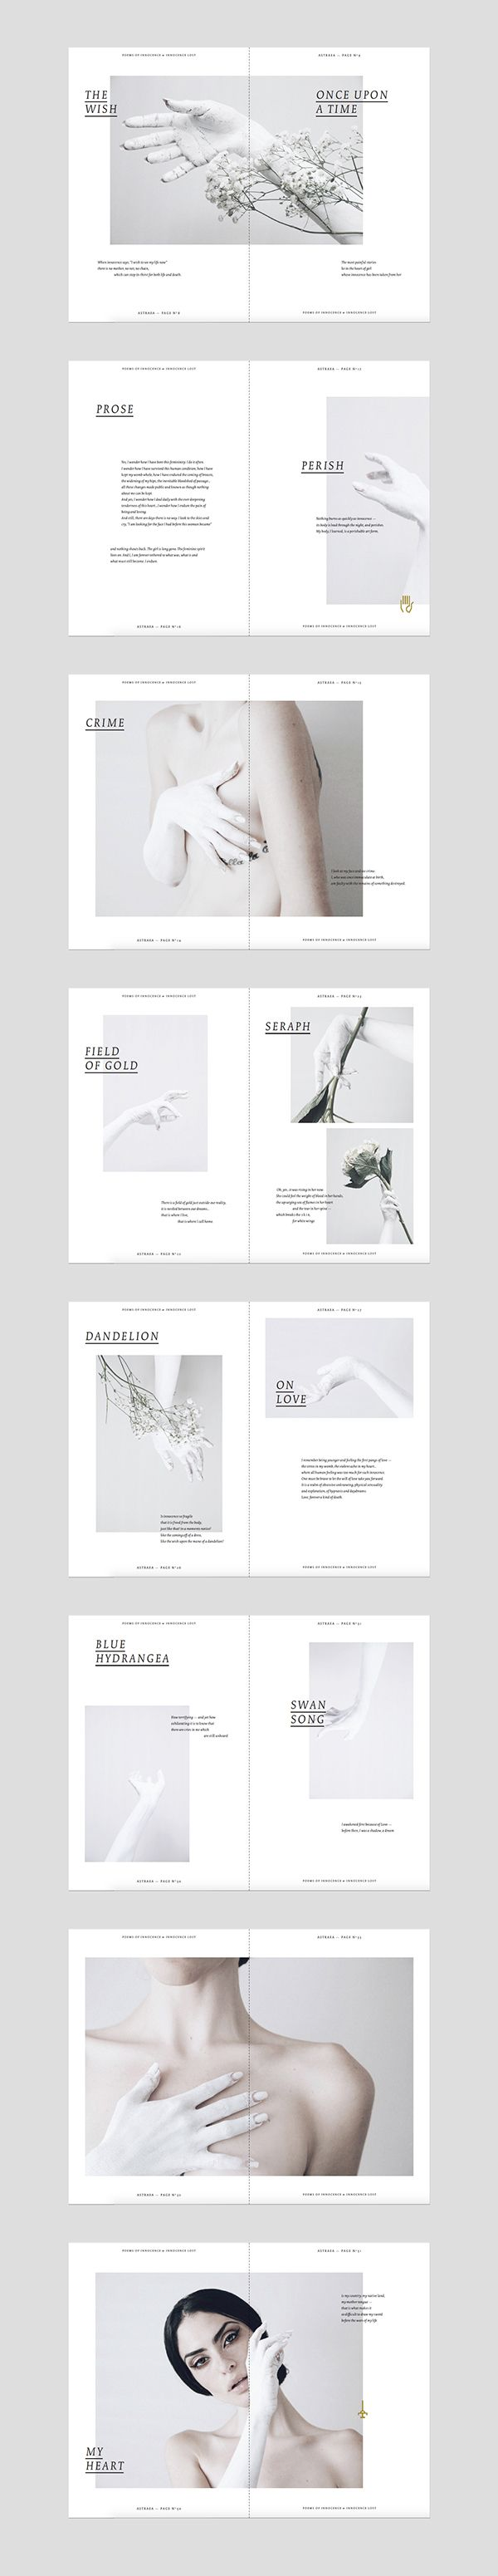 pure white minimal Editorial Design | typography / graphic design: ASTRAEA…